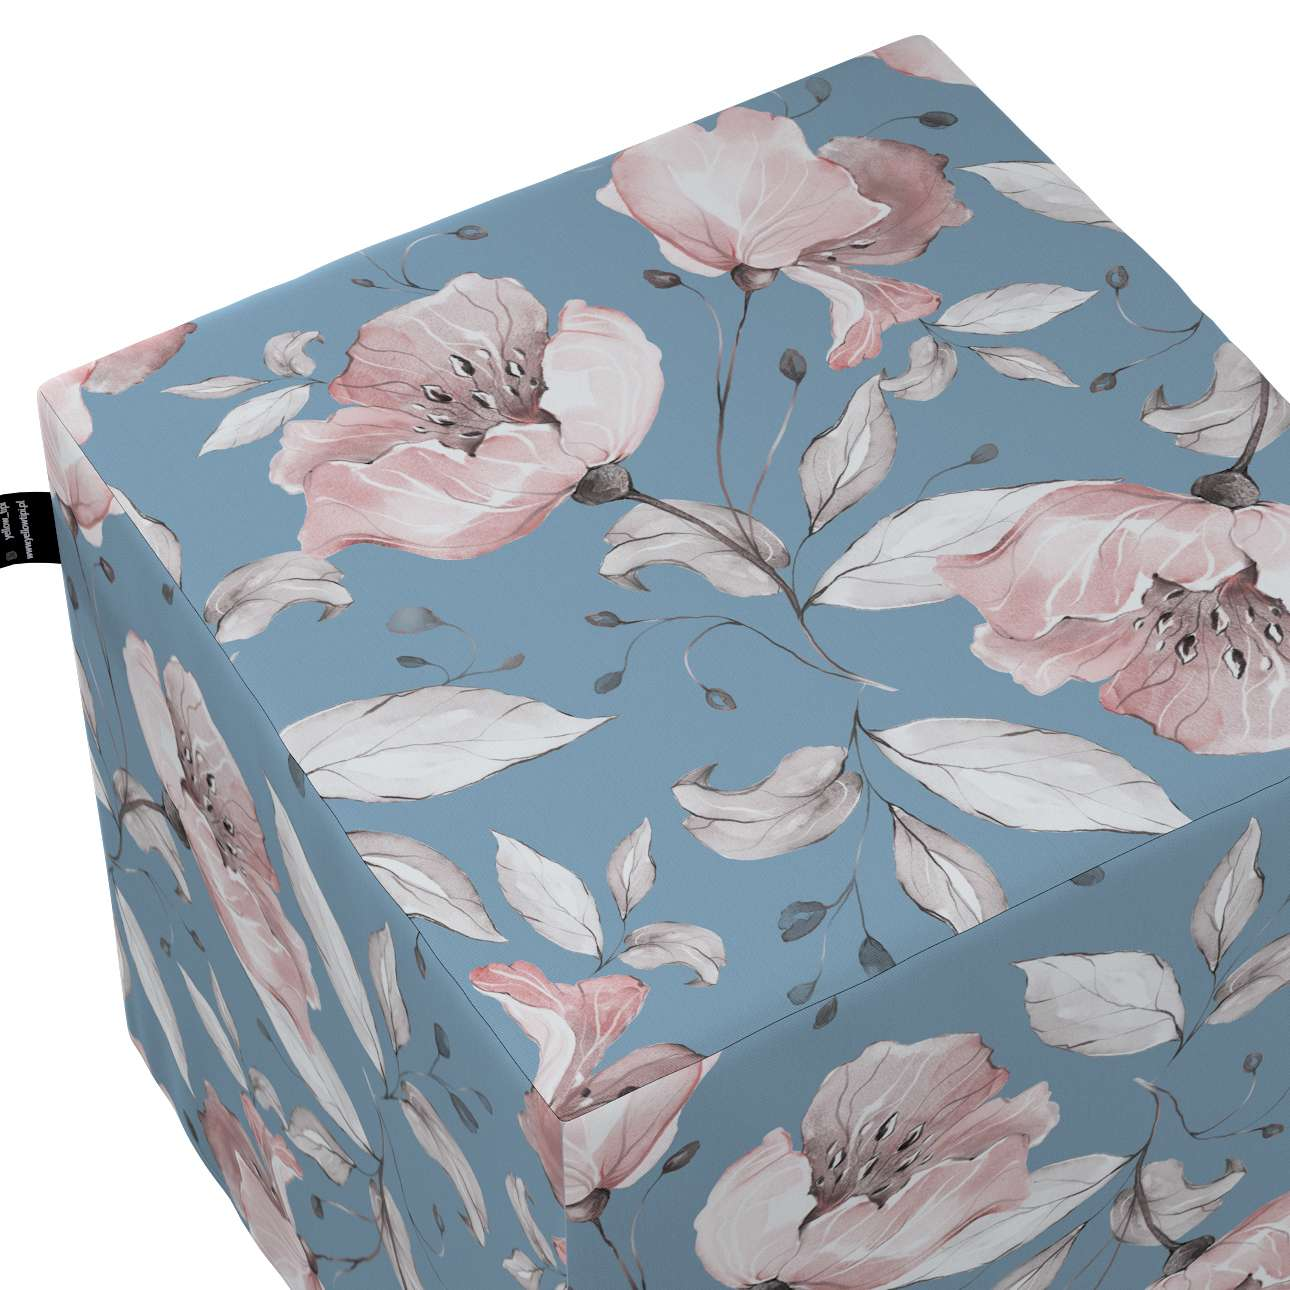 Nano cube pouf in collection Magic Collection, fabric: 500-18